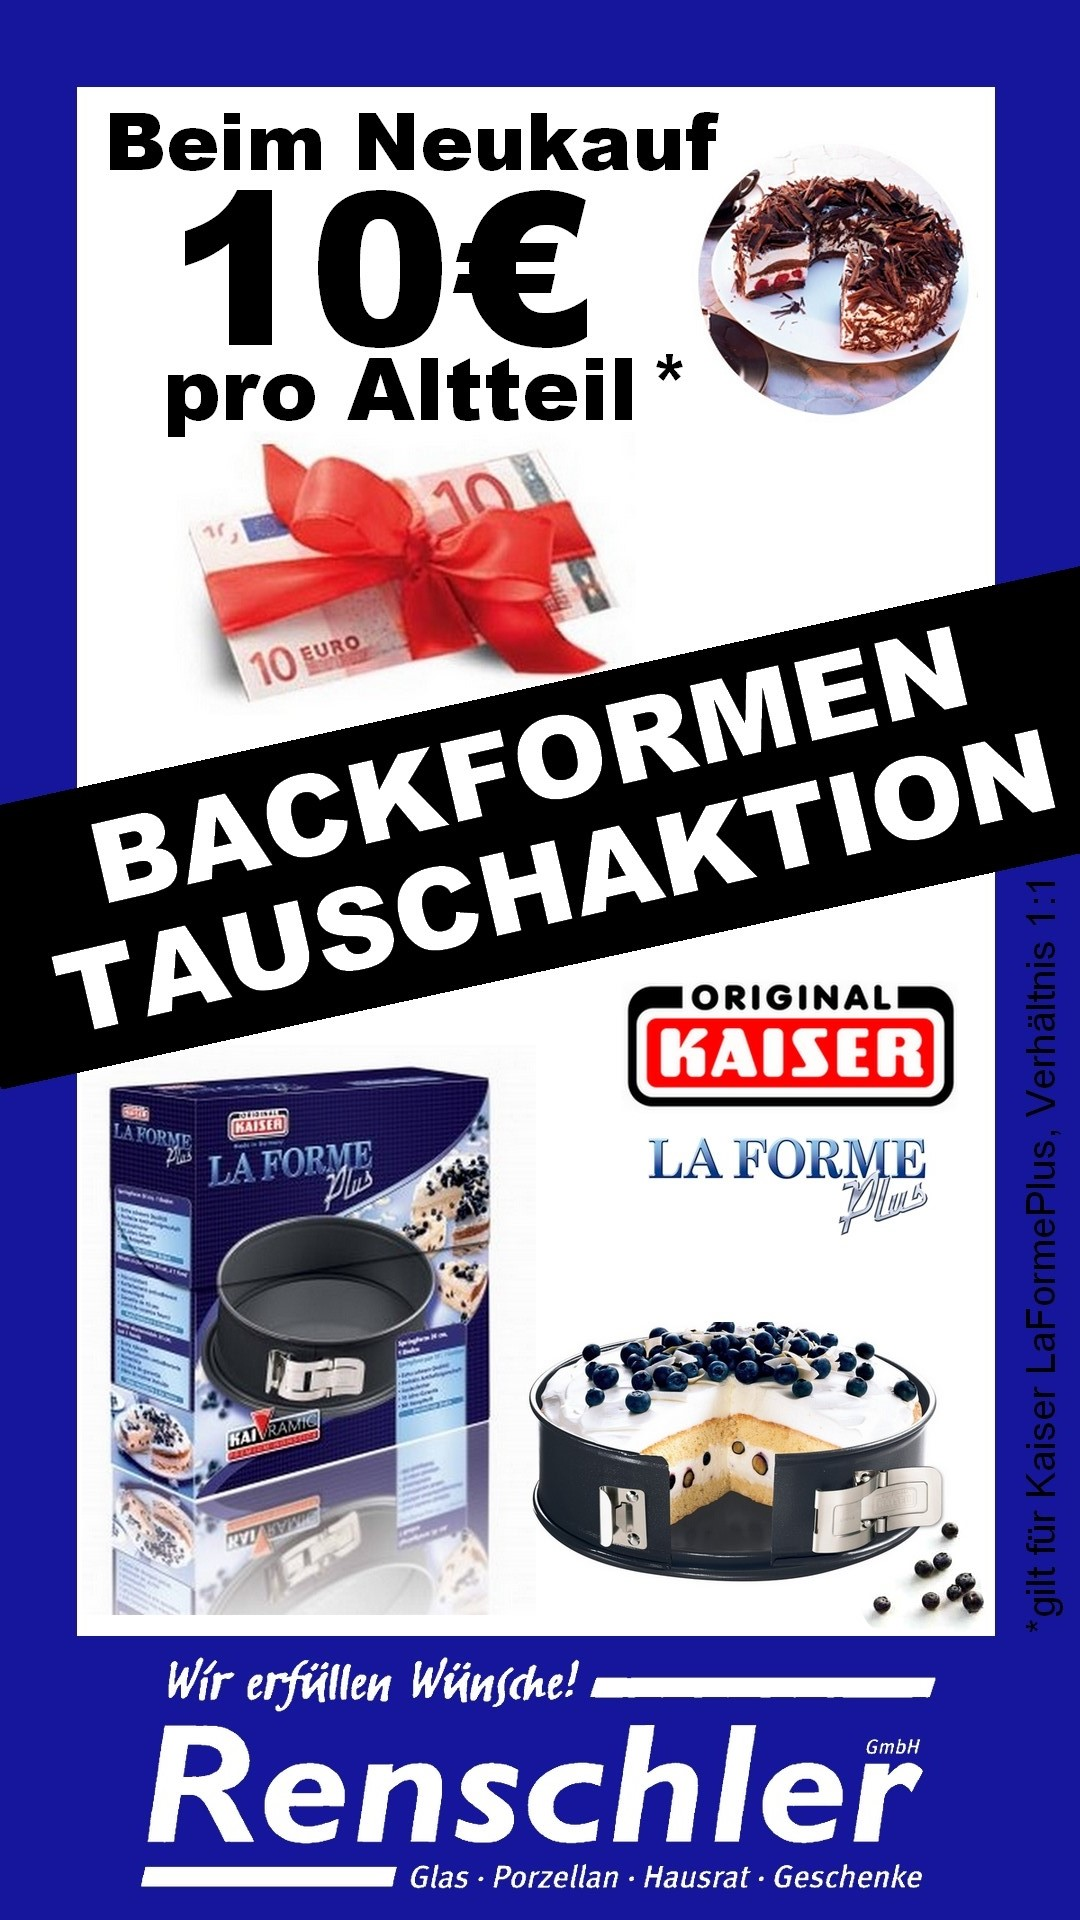 1 Tauschaktion Backform